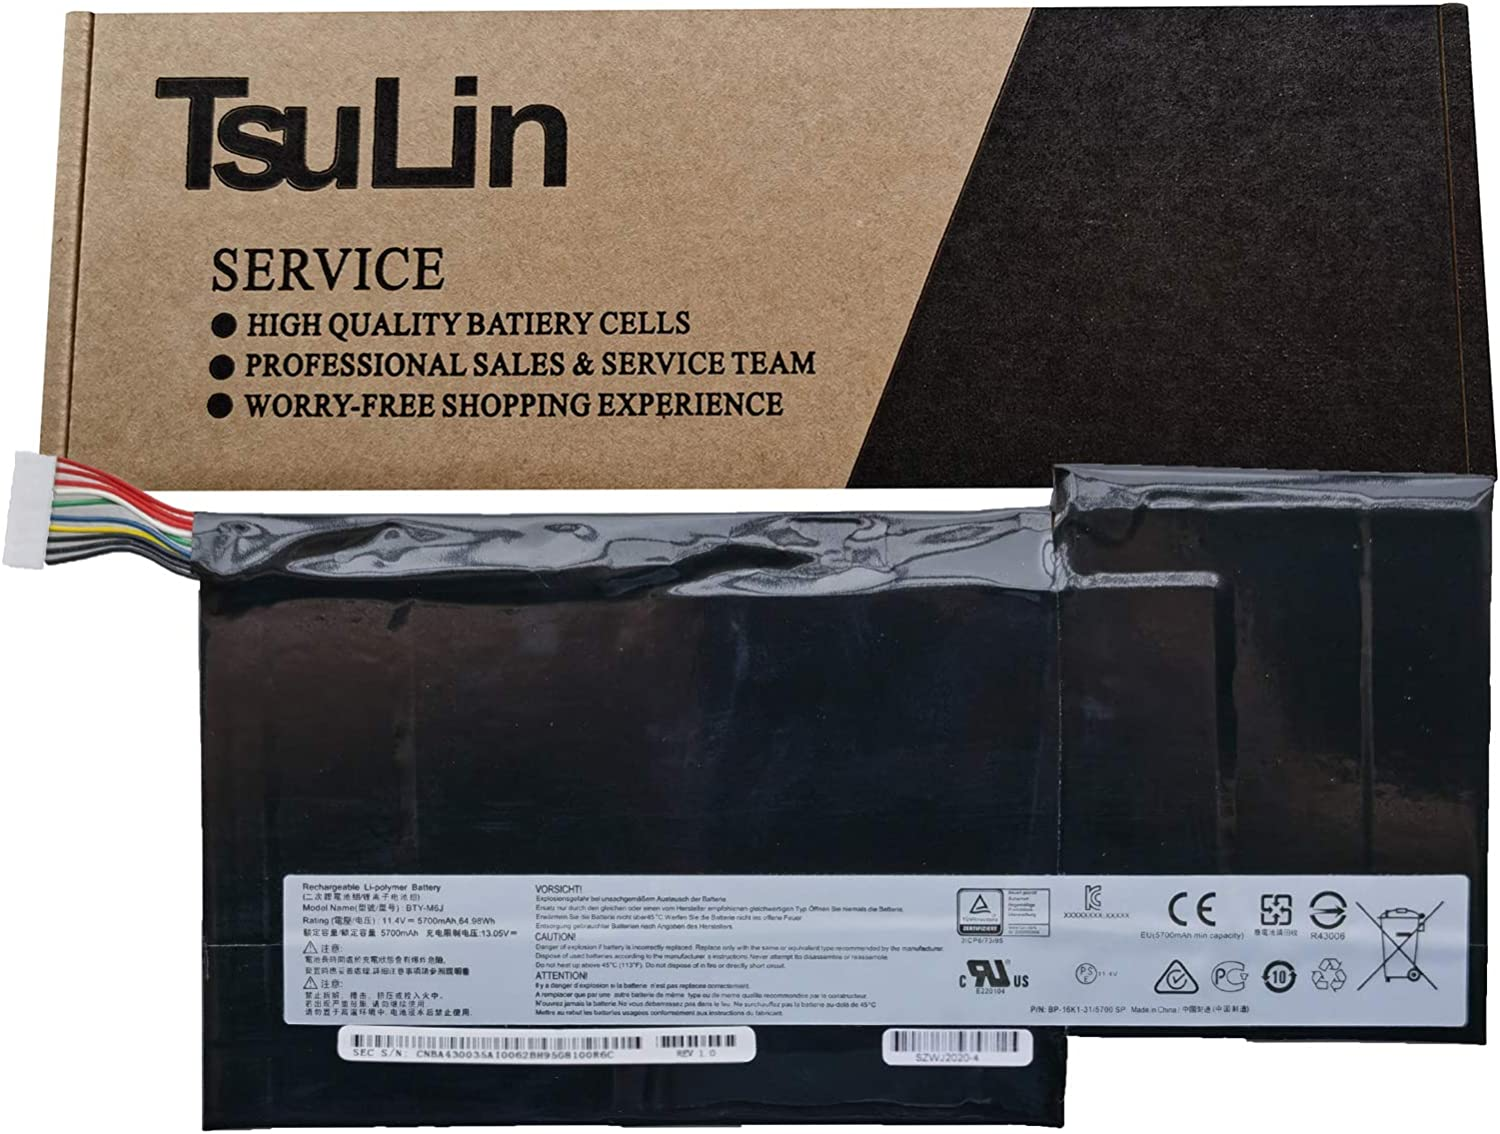 TsuLin BTY-M6J Laptop Battery Replacement for MSI GS63 GS63VR GS73 GS73VR 6RF Stealth Pro 6RF-001US BP-16K1-31 Series Notebook BTY-U6J BP-16K1-31 11.4V 64.98Wh 5700mAh